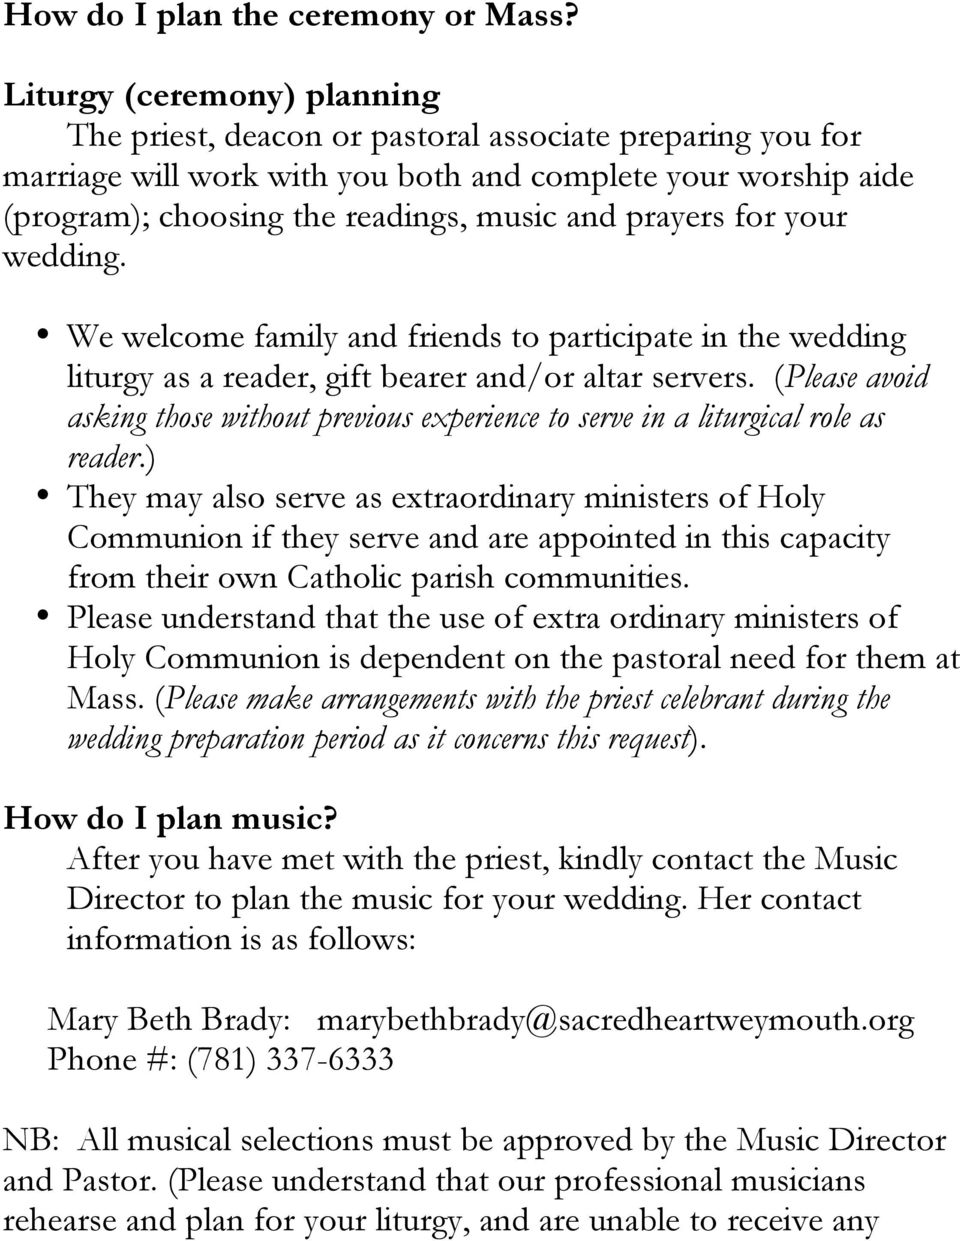 prayers for your wedding. We welcome family and friends to participate in the wedding liturgy as a reader, gift bearer and/or altar servers.